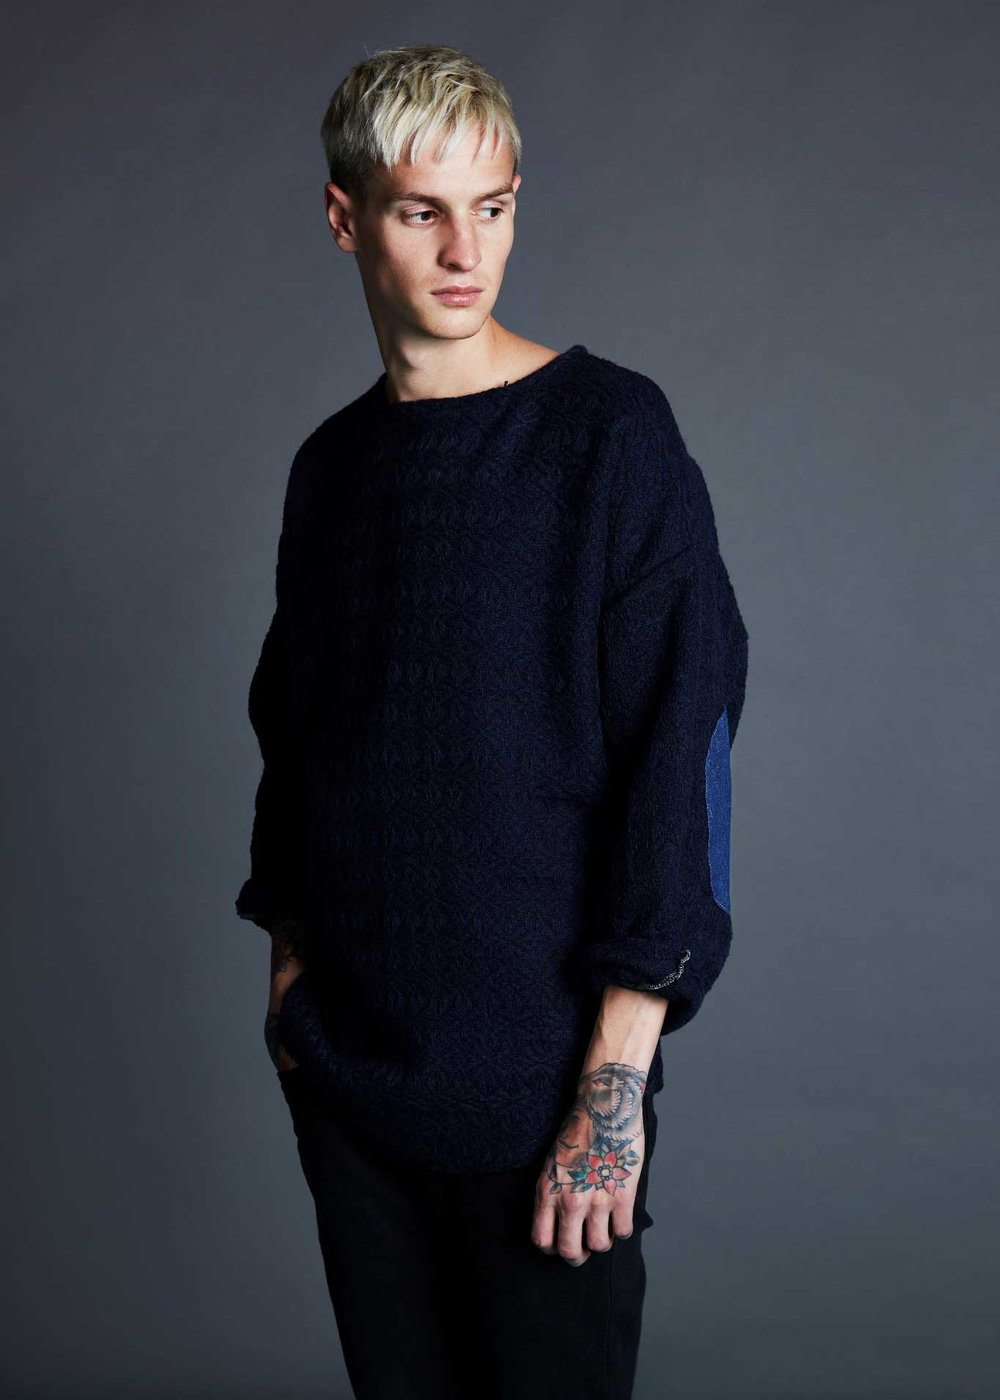 Navy Wool Jumper with Denim Elbow Patches, £60, Alec Bizby.